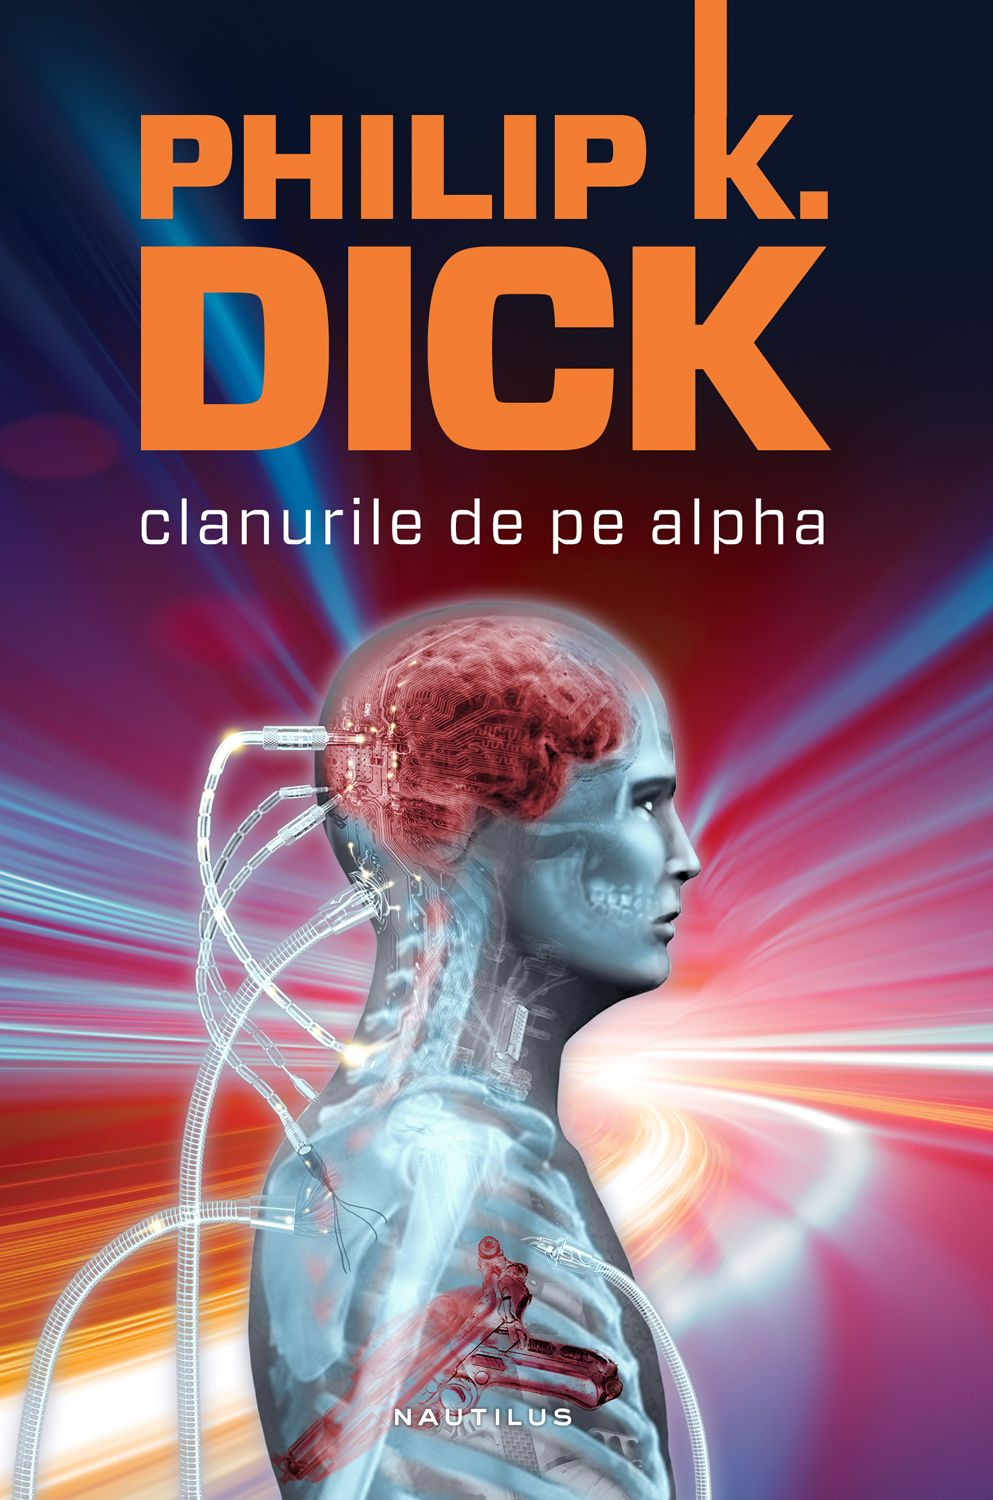 Ebooks de Philip k dick